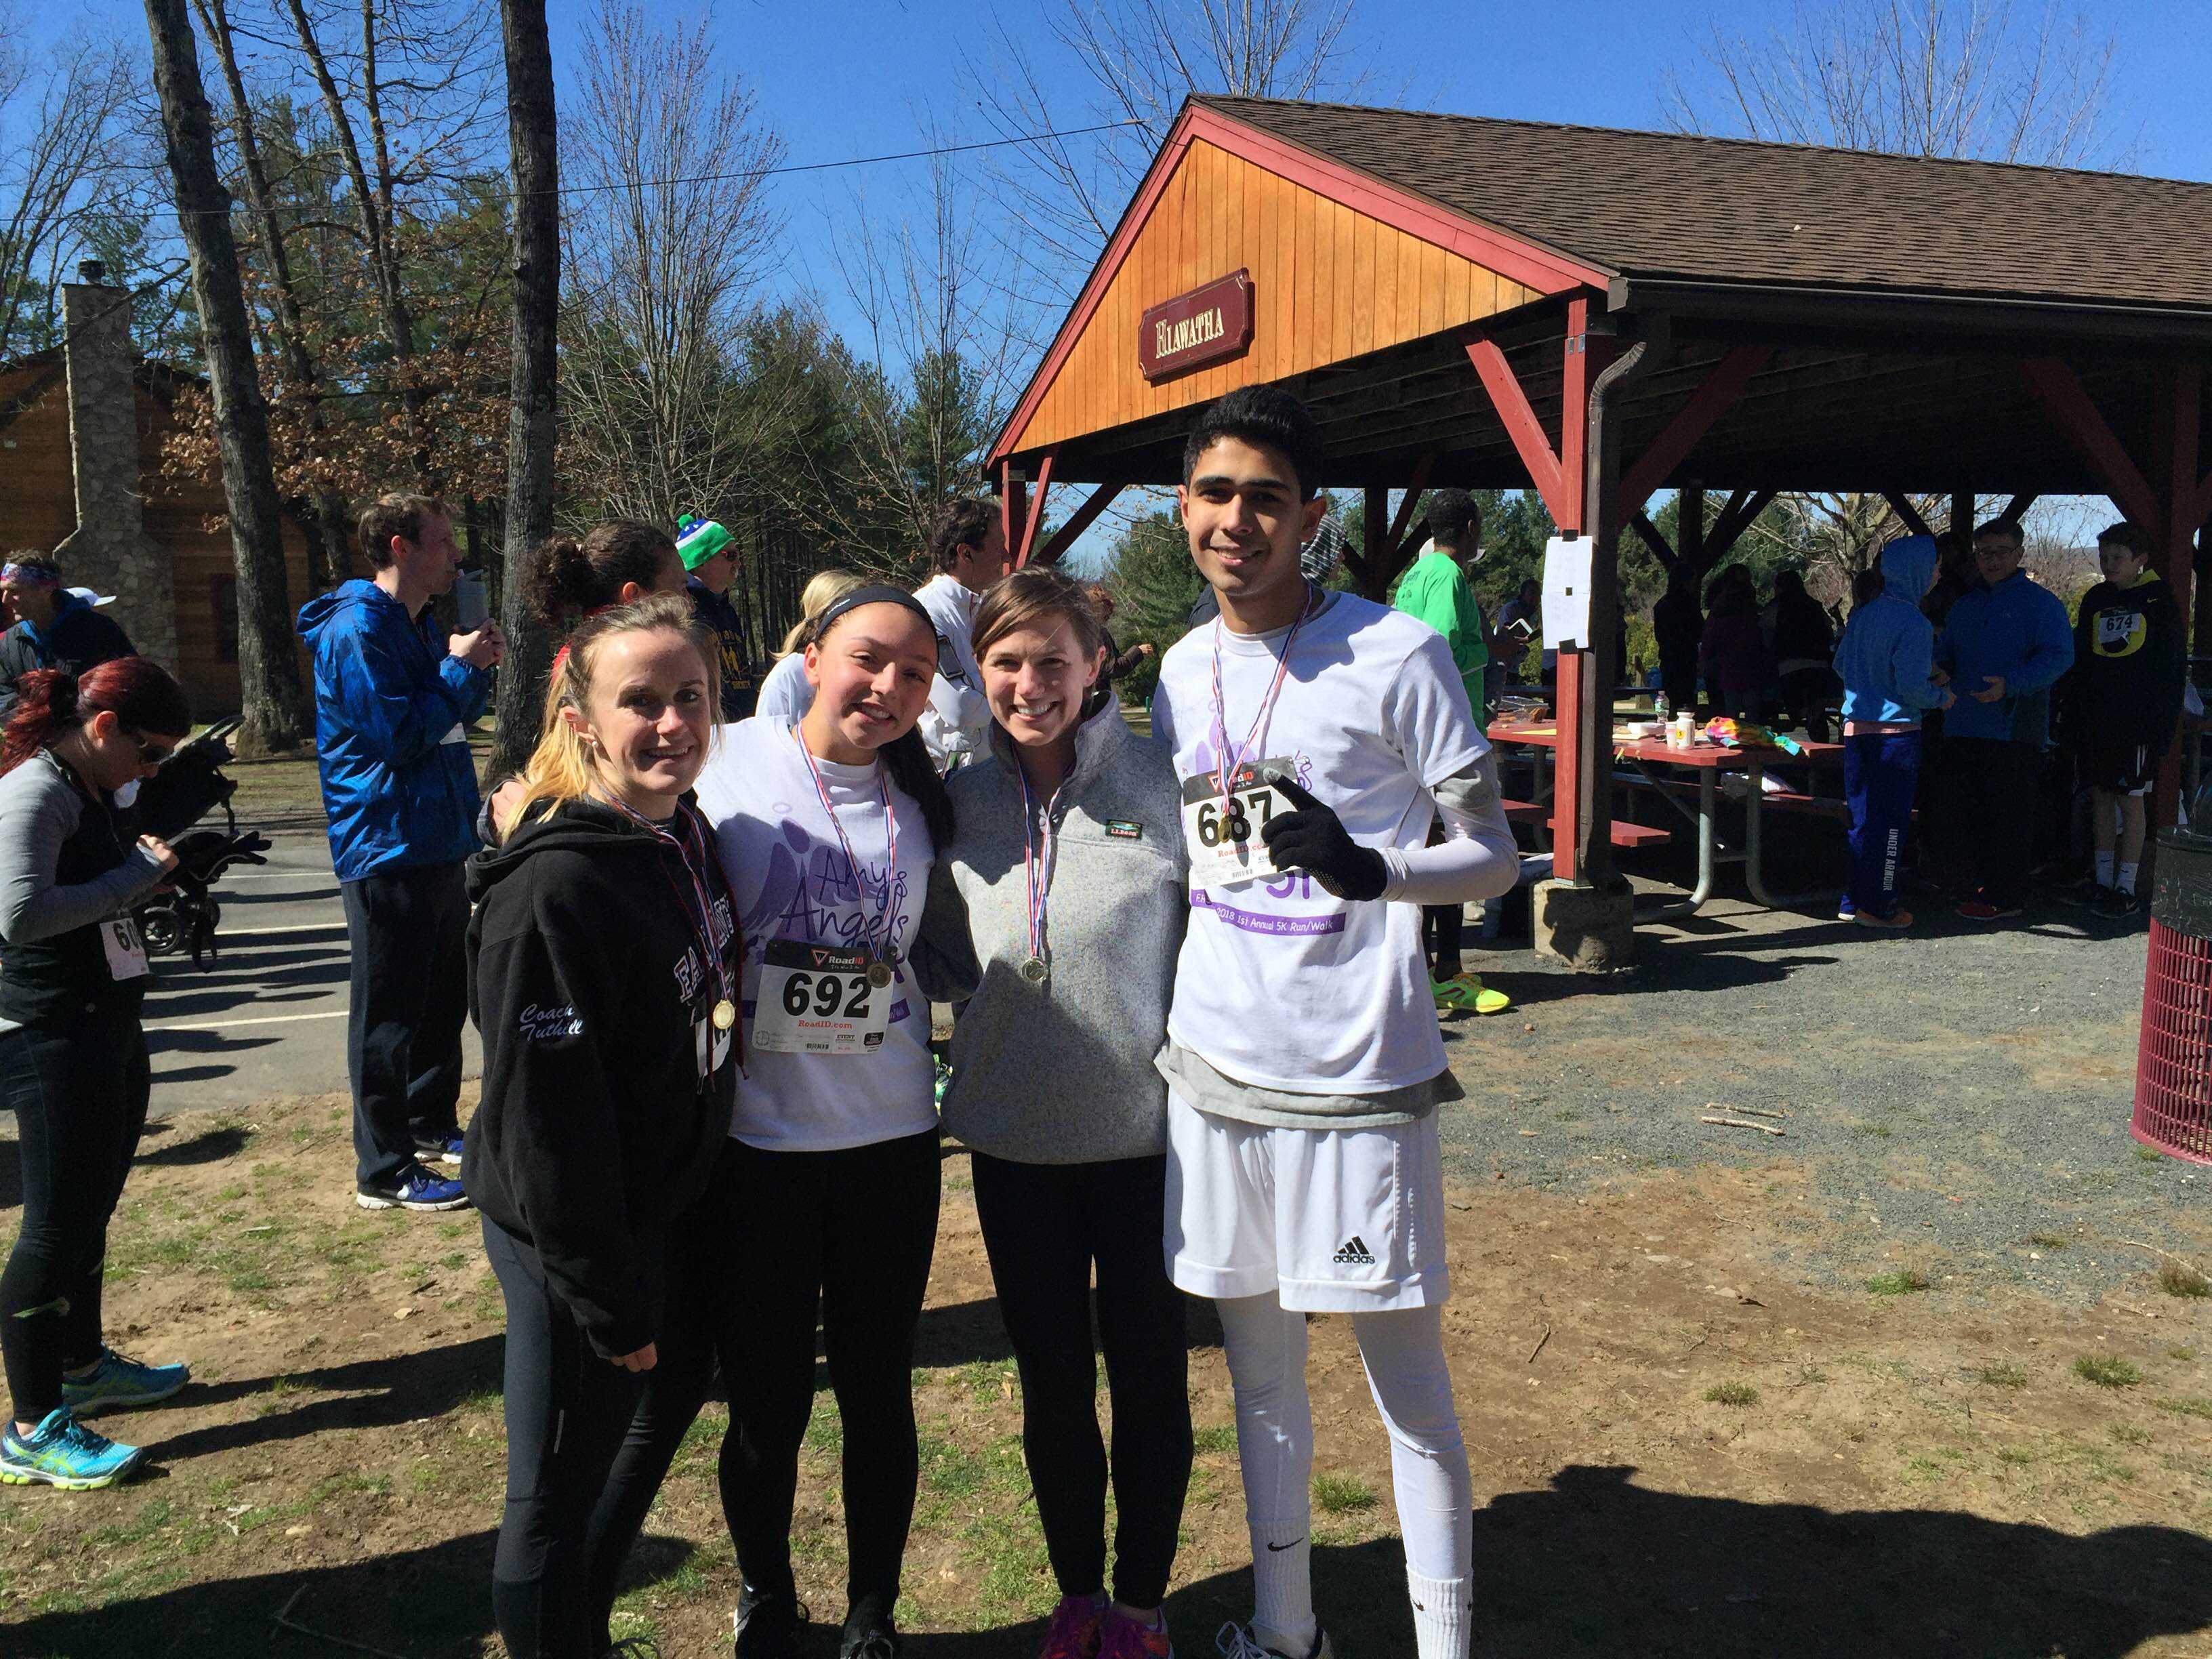 Sophomores Vini Munshi and Olivia Bottalico show off their medals alongside social studies teacher Emma Tuthill and English teacher Katie Buckley after running the 5K on April 10.